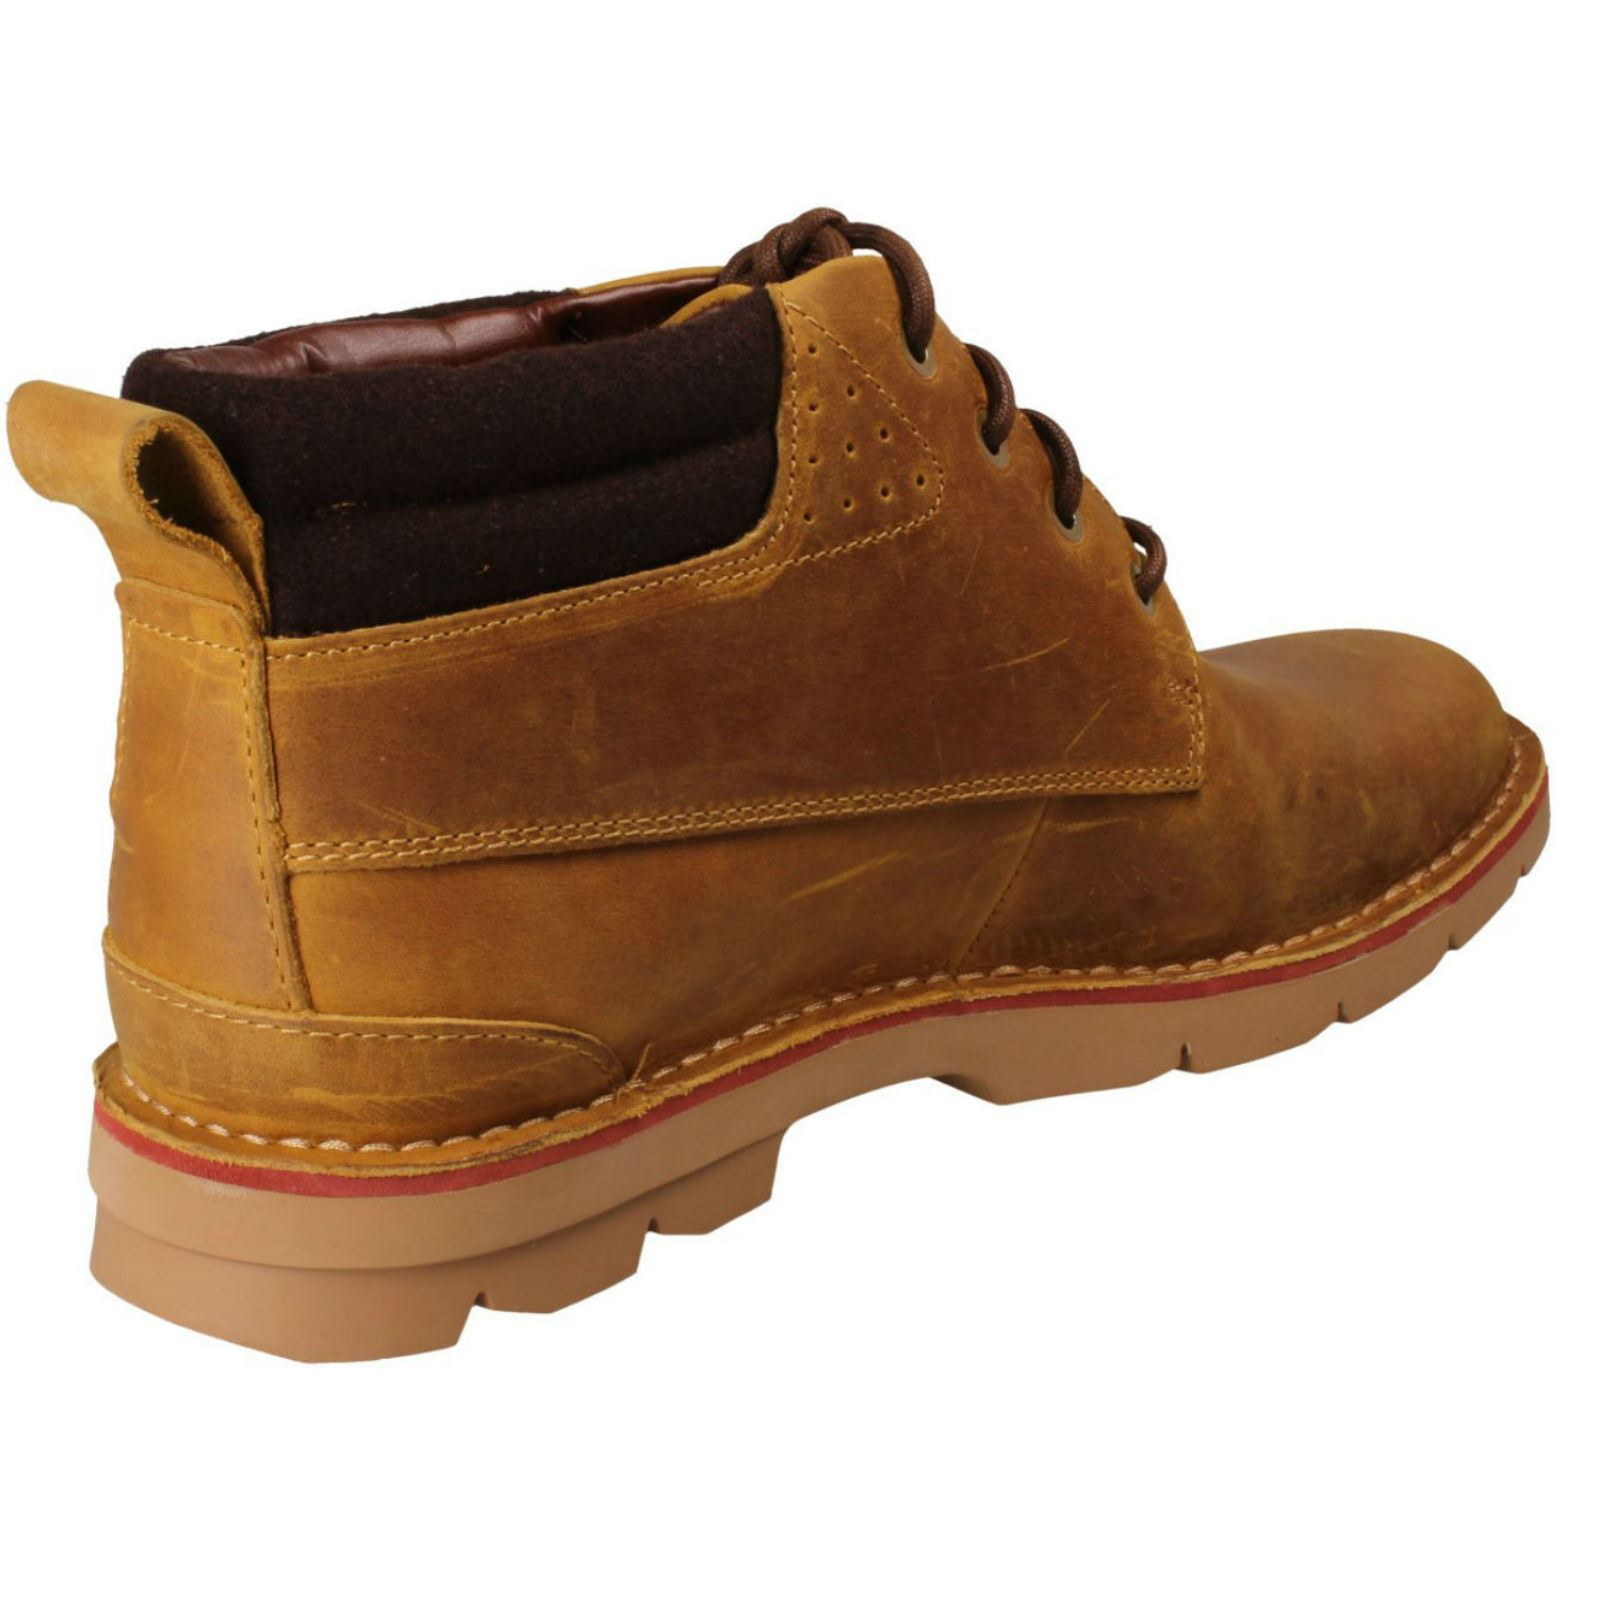 Mens-Clarks-Warm-Lined-Casual-Boots-039-Varick-Heal-039 thumbnail 15